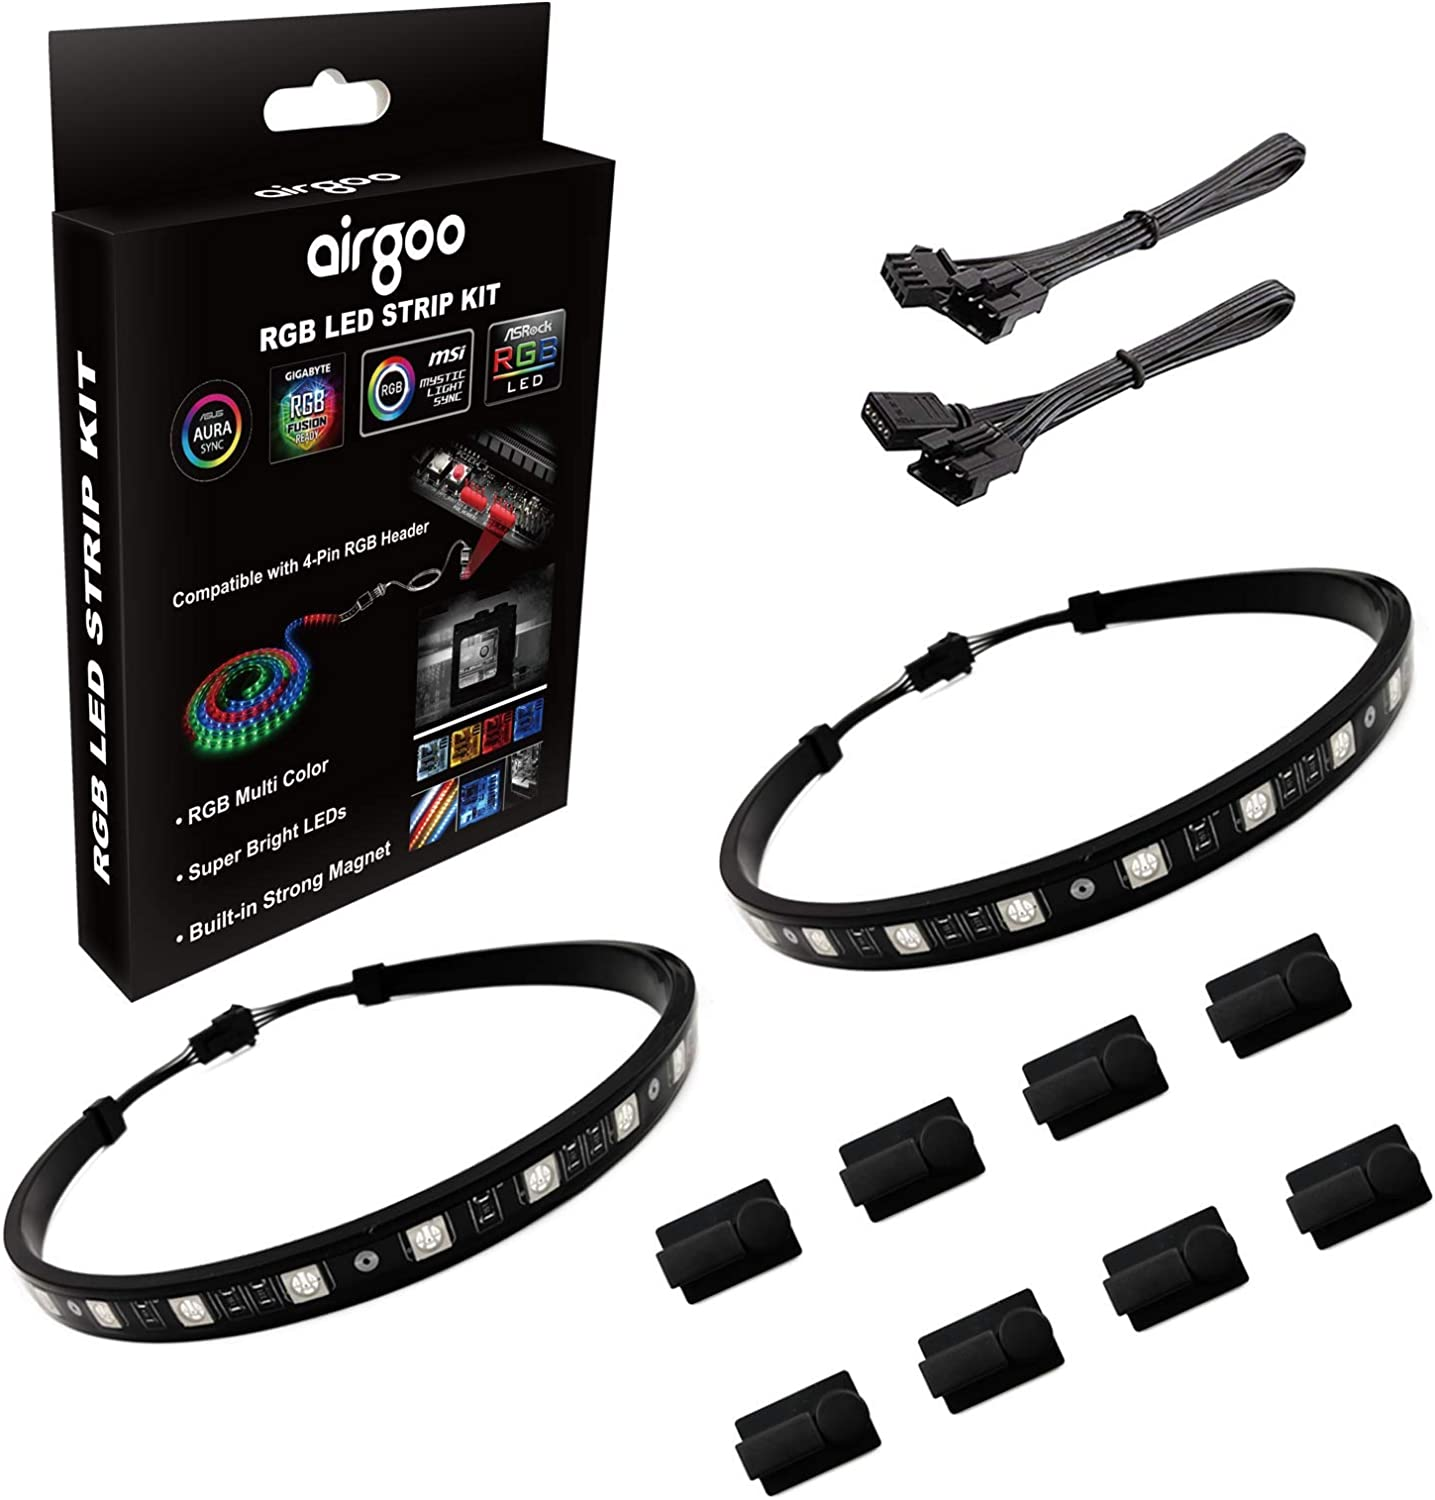 PC RGB LED Strip Light, Easy Install with 8pcs Strong Magnetic Clips, Black Silicone Housing 2PCS Strips 42LEDs for 12V 4-Pin RGB LED Header, ASUS Aura RGB, MSI Mystic Light, Gigabyte RGB Funsion M/B